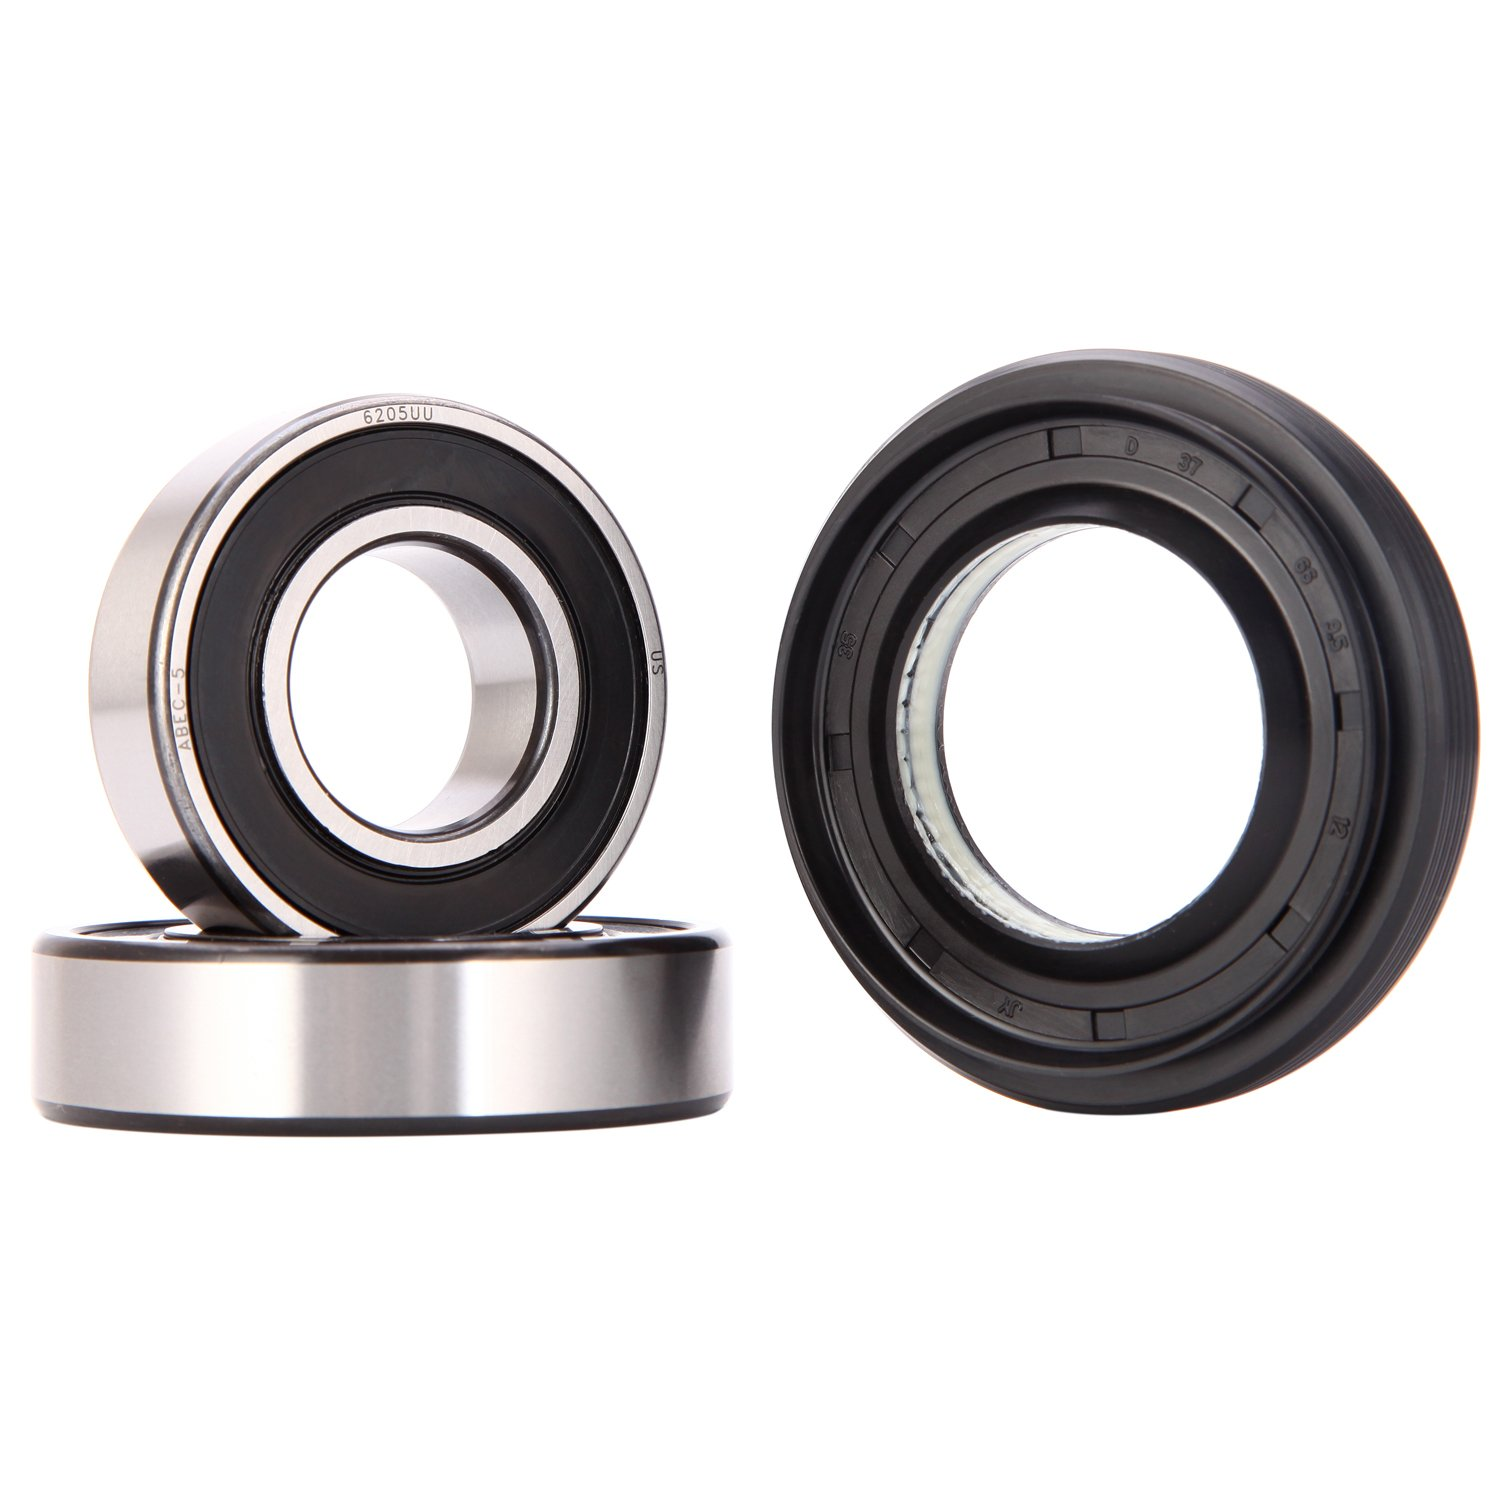 XiKe 4036ER2003A, 4280FR4048C and 4280FR4048K Front Load Washer Tub Bearing & Seal Kit Rotate Quiet and Durable, Replacement for LG and Kenmore Etc.